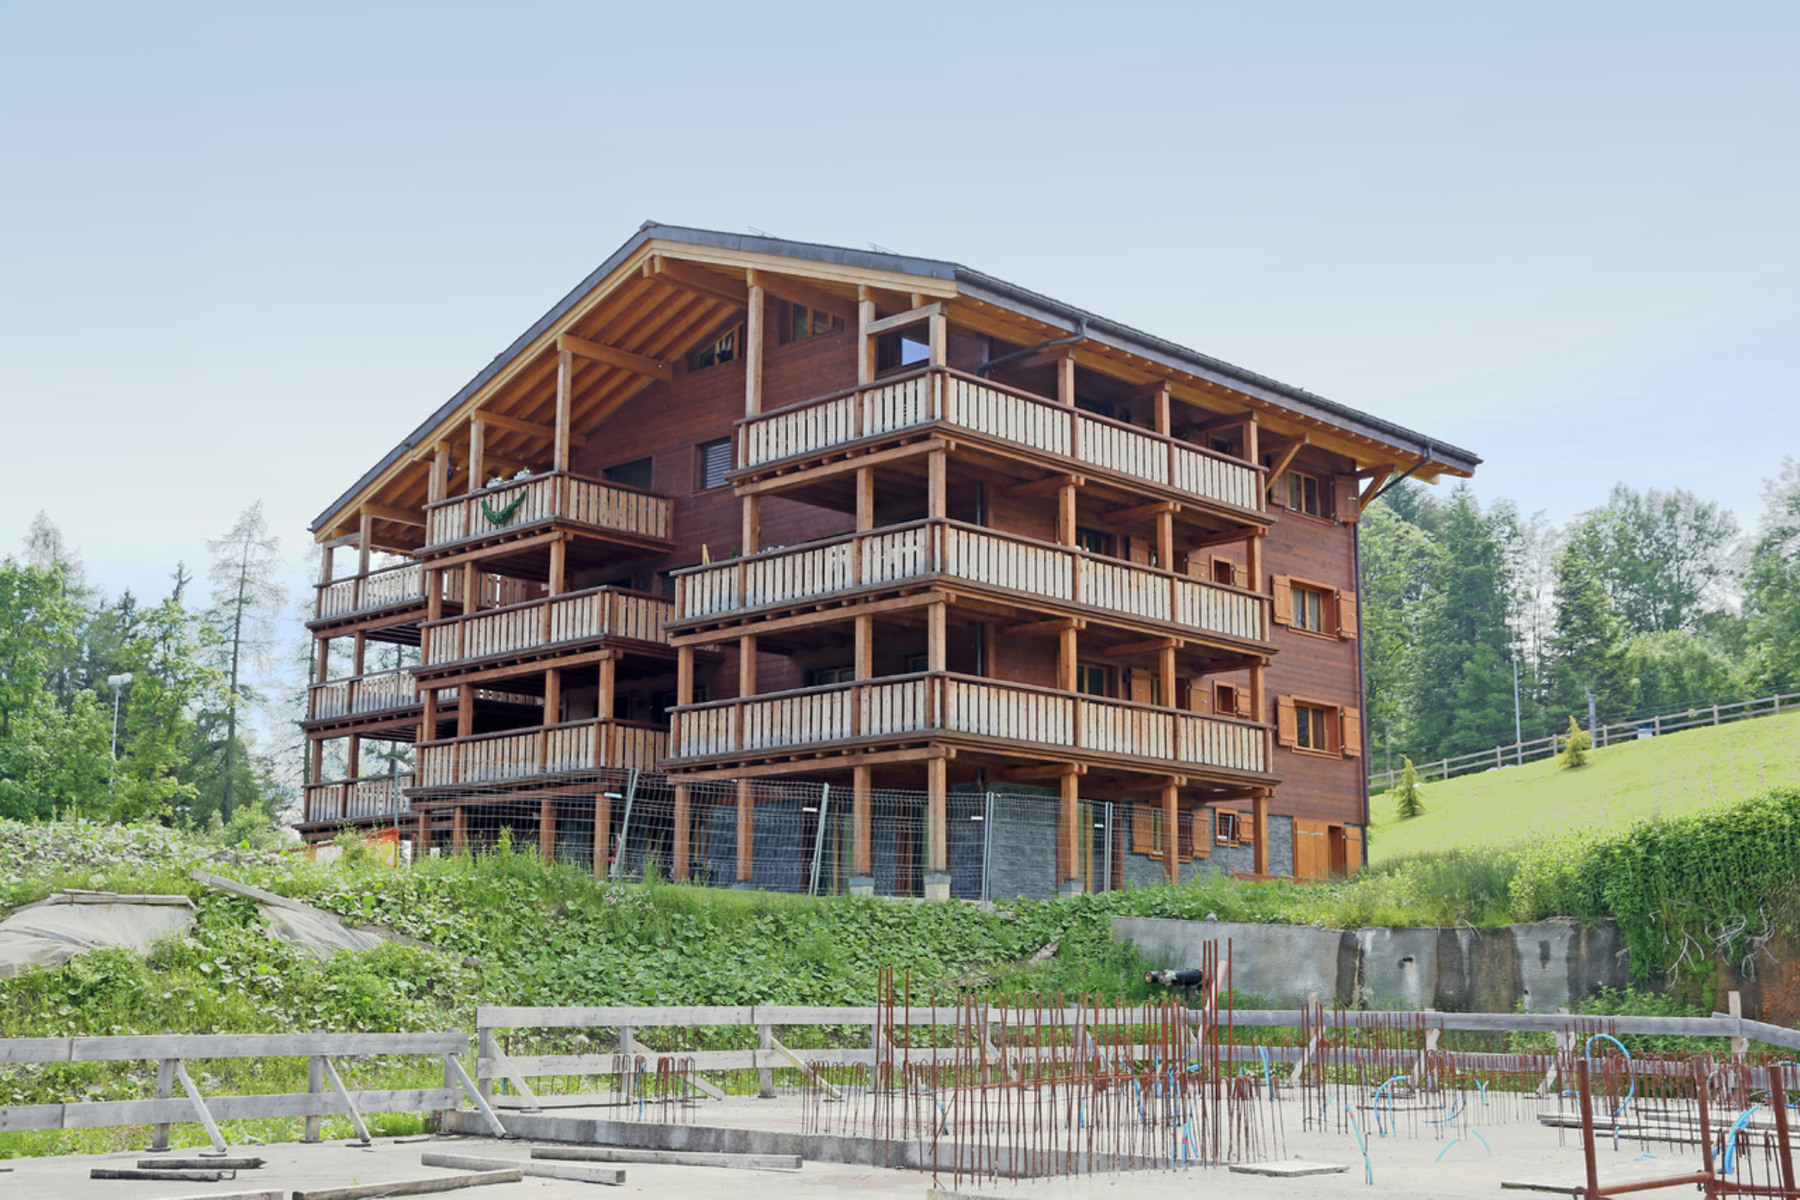 Duplex for Sale at Les Résidences « Terra Nostra » Gryon Gryon, Vaud, 1882 Switzerland